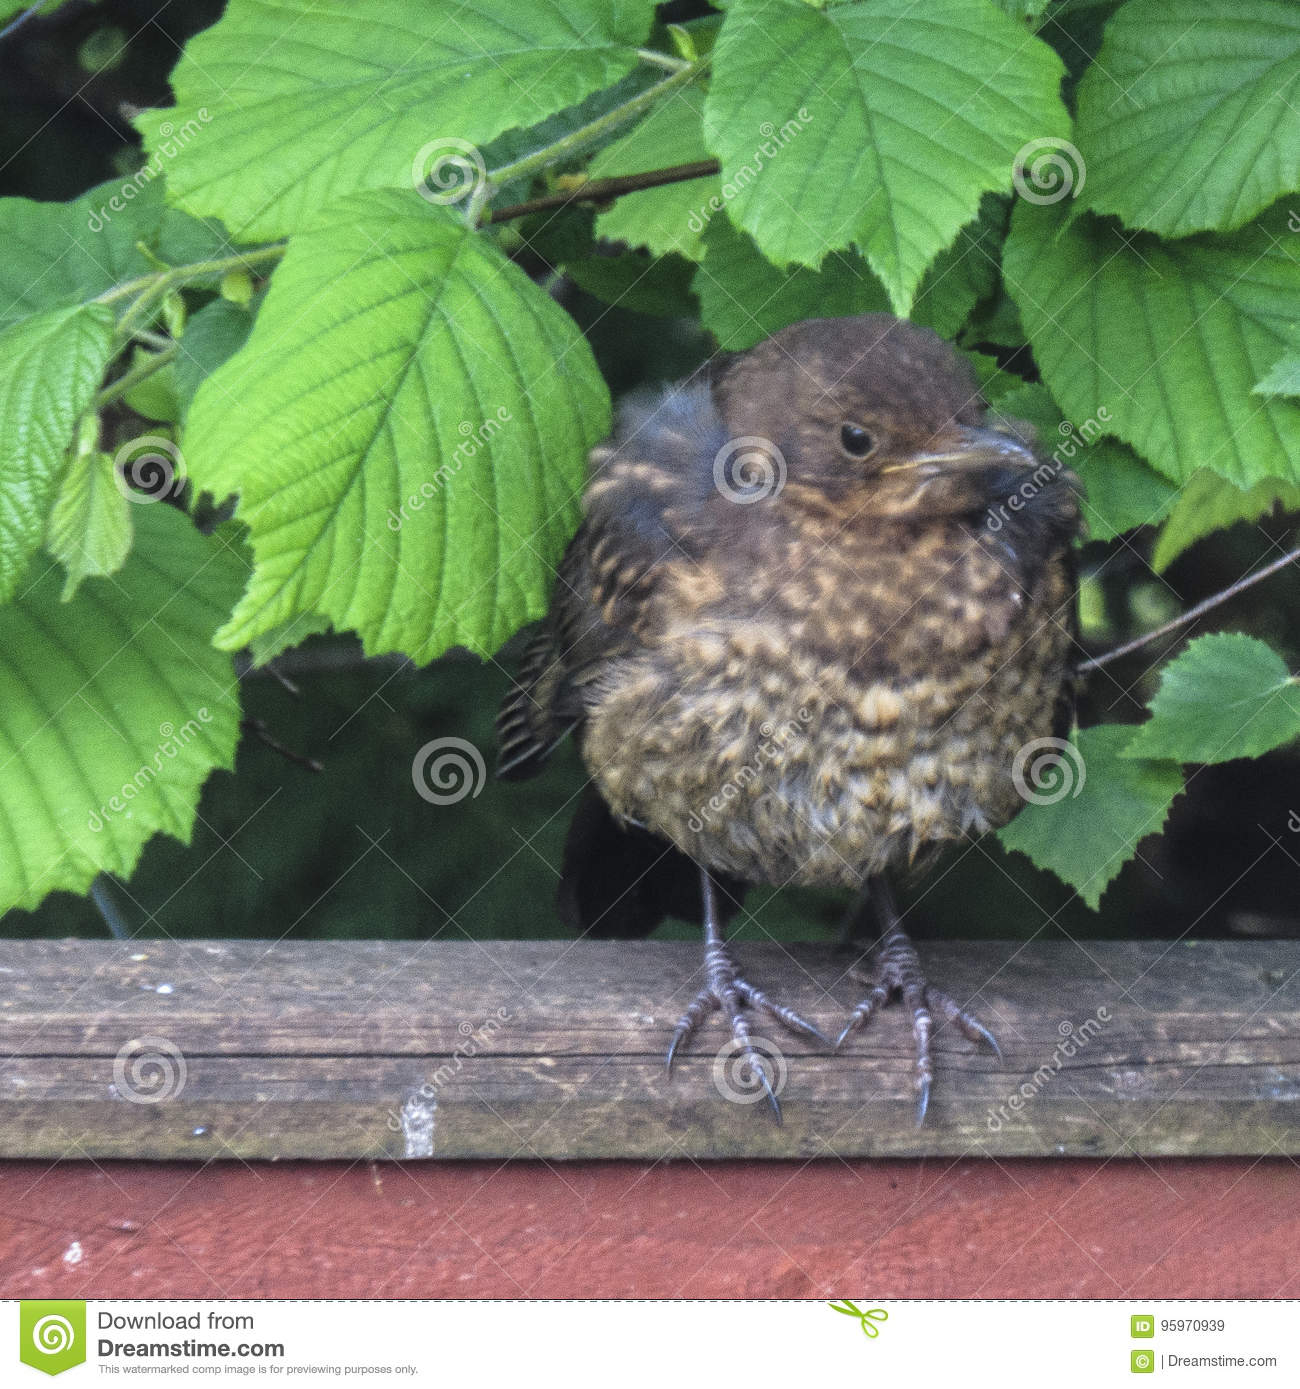 A fledgling blackbird staring at the camera